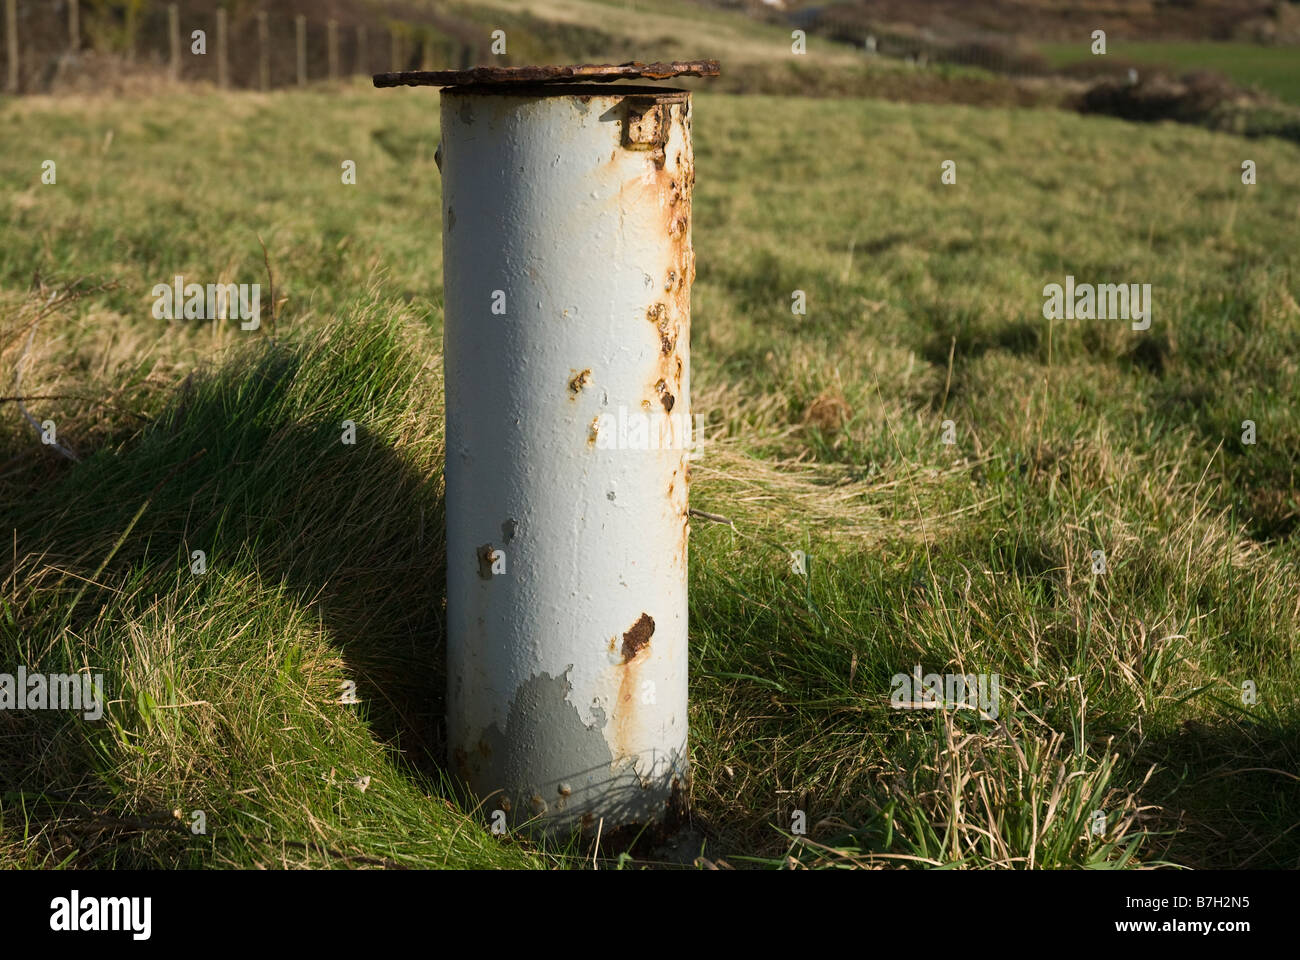 Gas vent on old landfill site, which enables the release of methane gas produced by the decomposing rubbish. - Stock Image